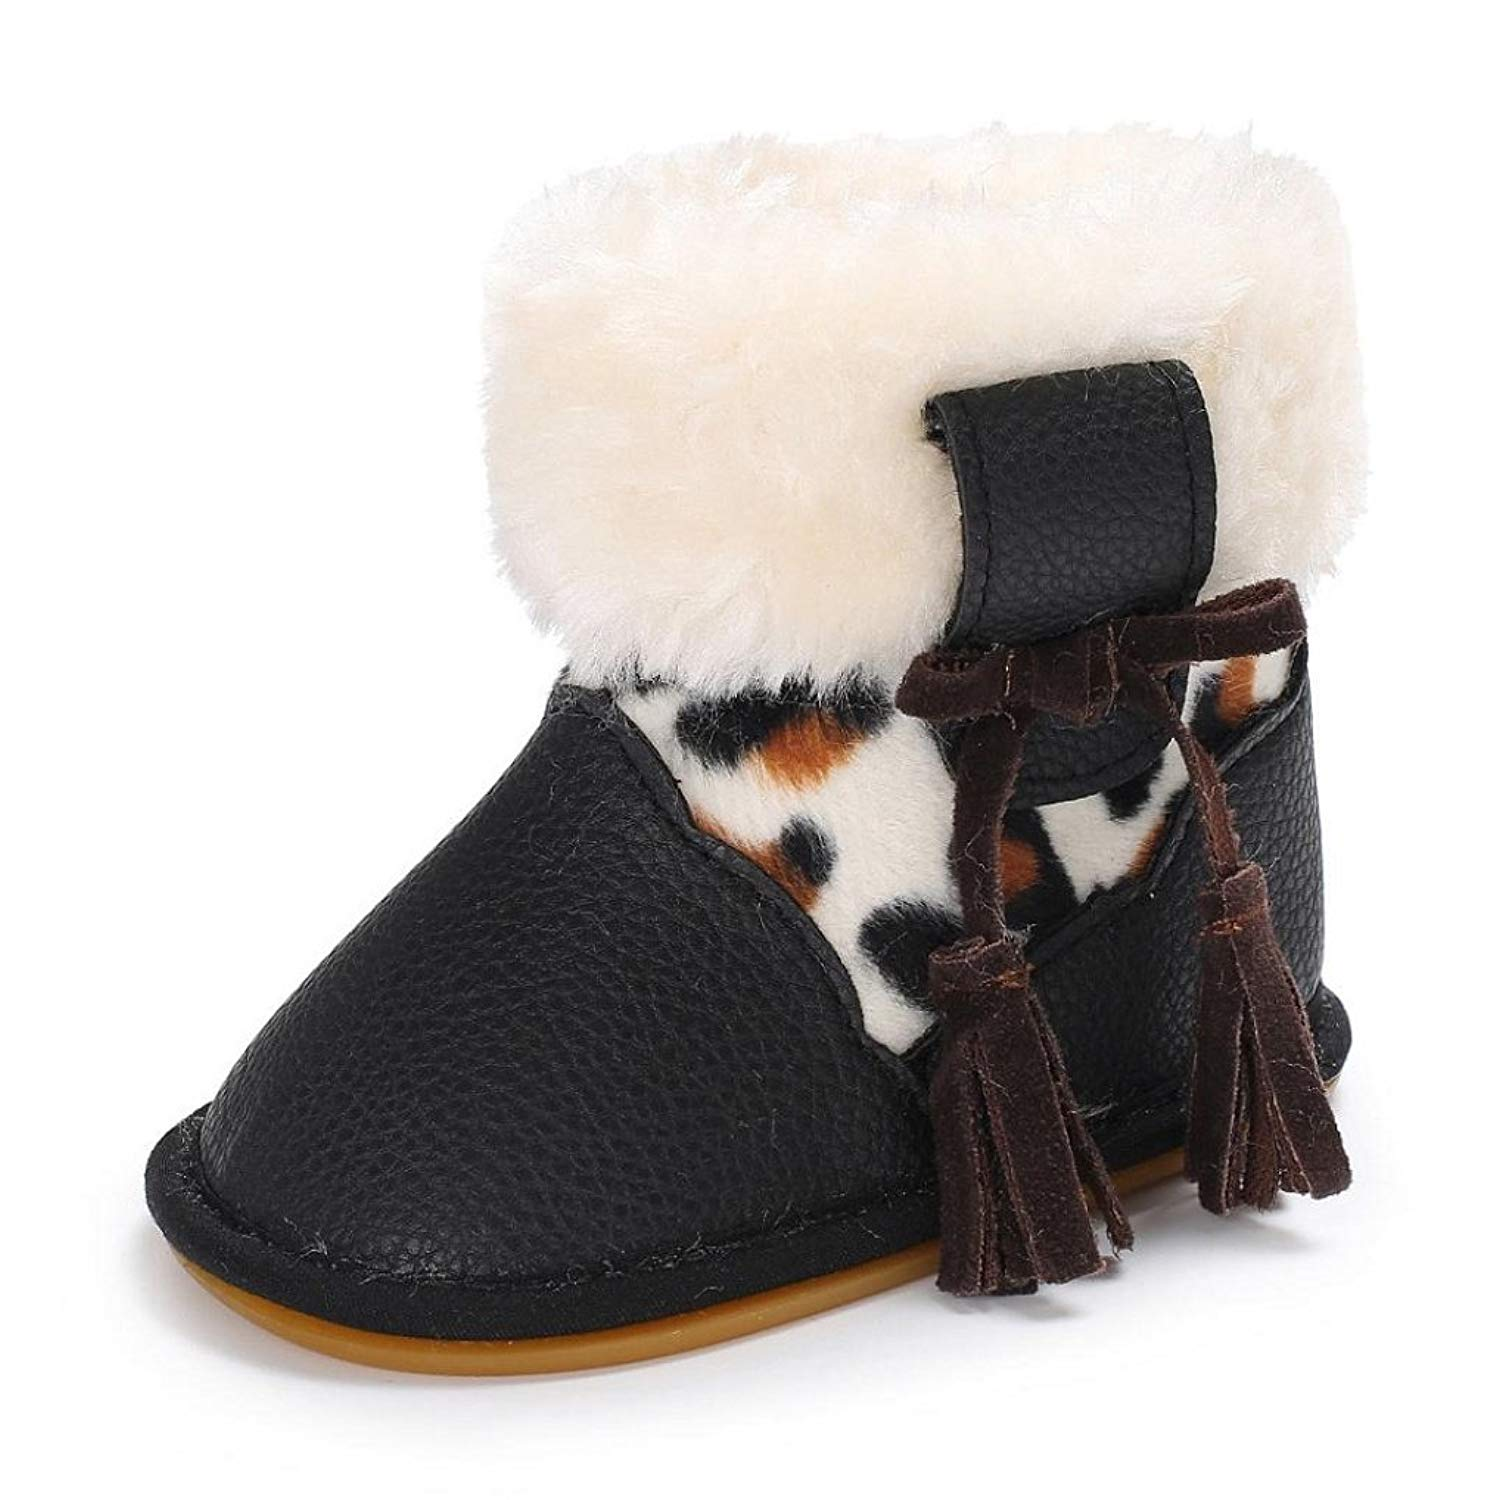 ec8f29f301ea9 Get Quotations · Appoi Winter Baby Girl Boy Soft Snow Boots Infant Toddler  Newborn Warm Shoes Snow Boots For